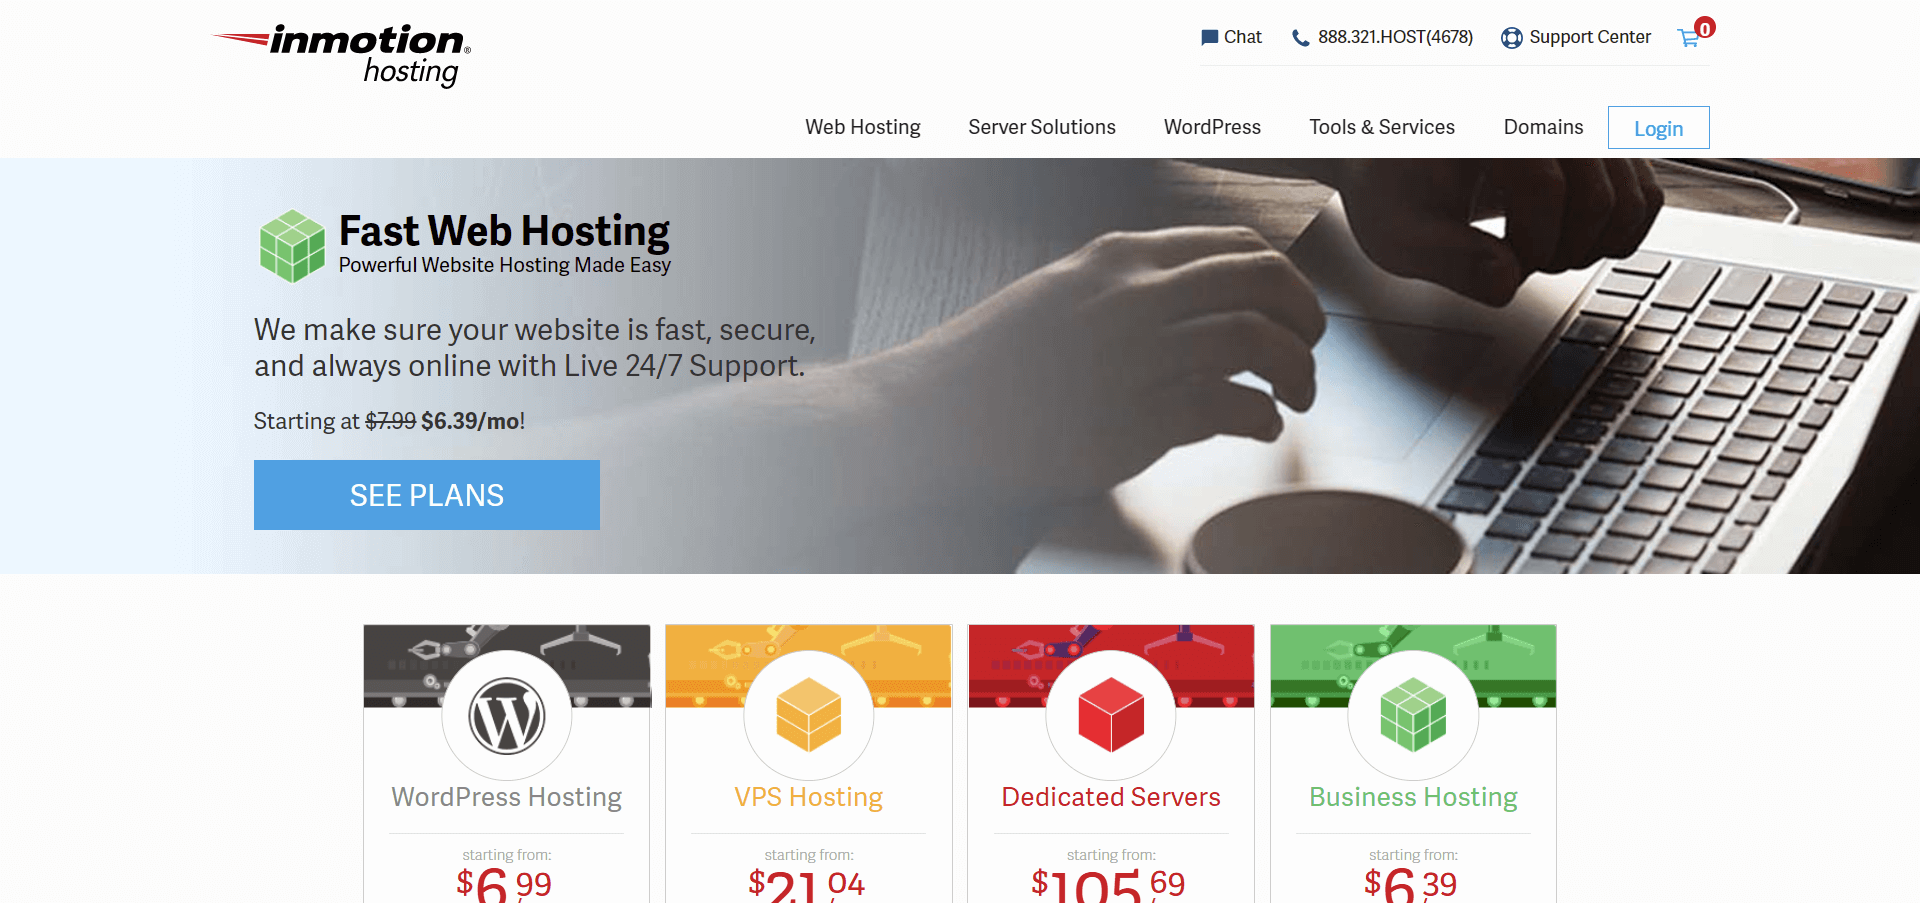 best web hosting for small business, best web hosting 2019, best web hosting for WordPress, web hosting comparison, SaaS blog, All That SaaS